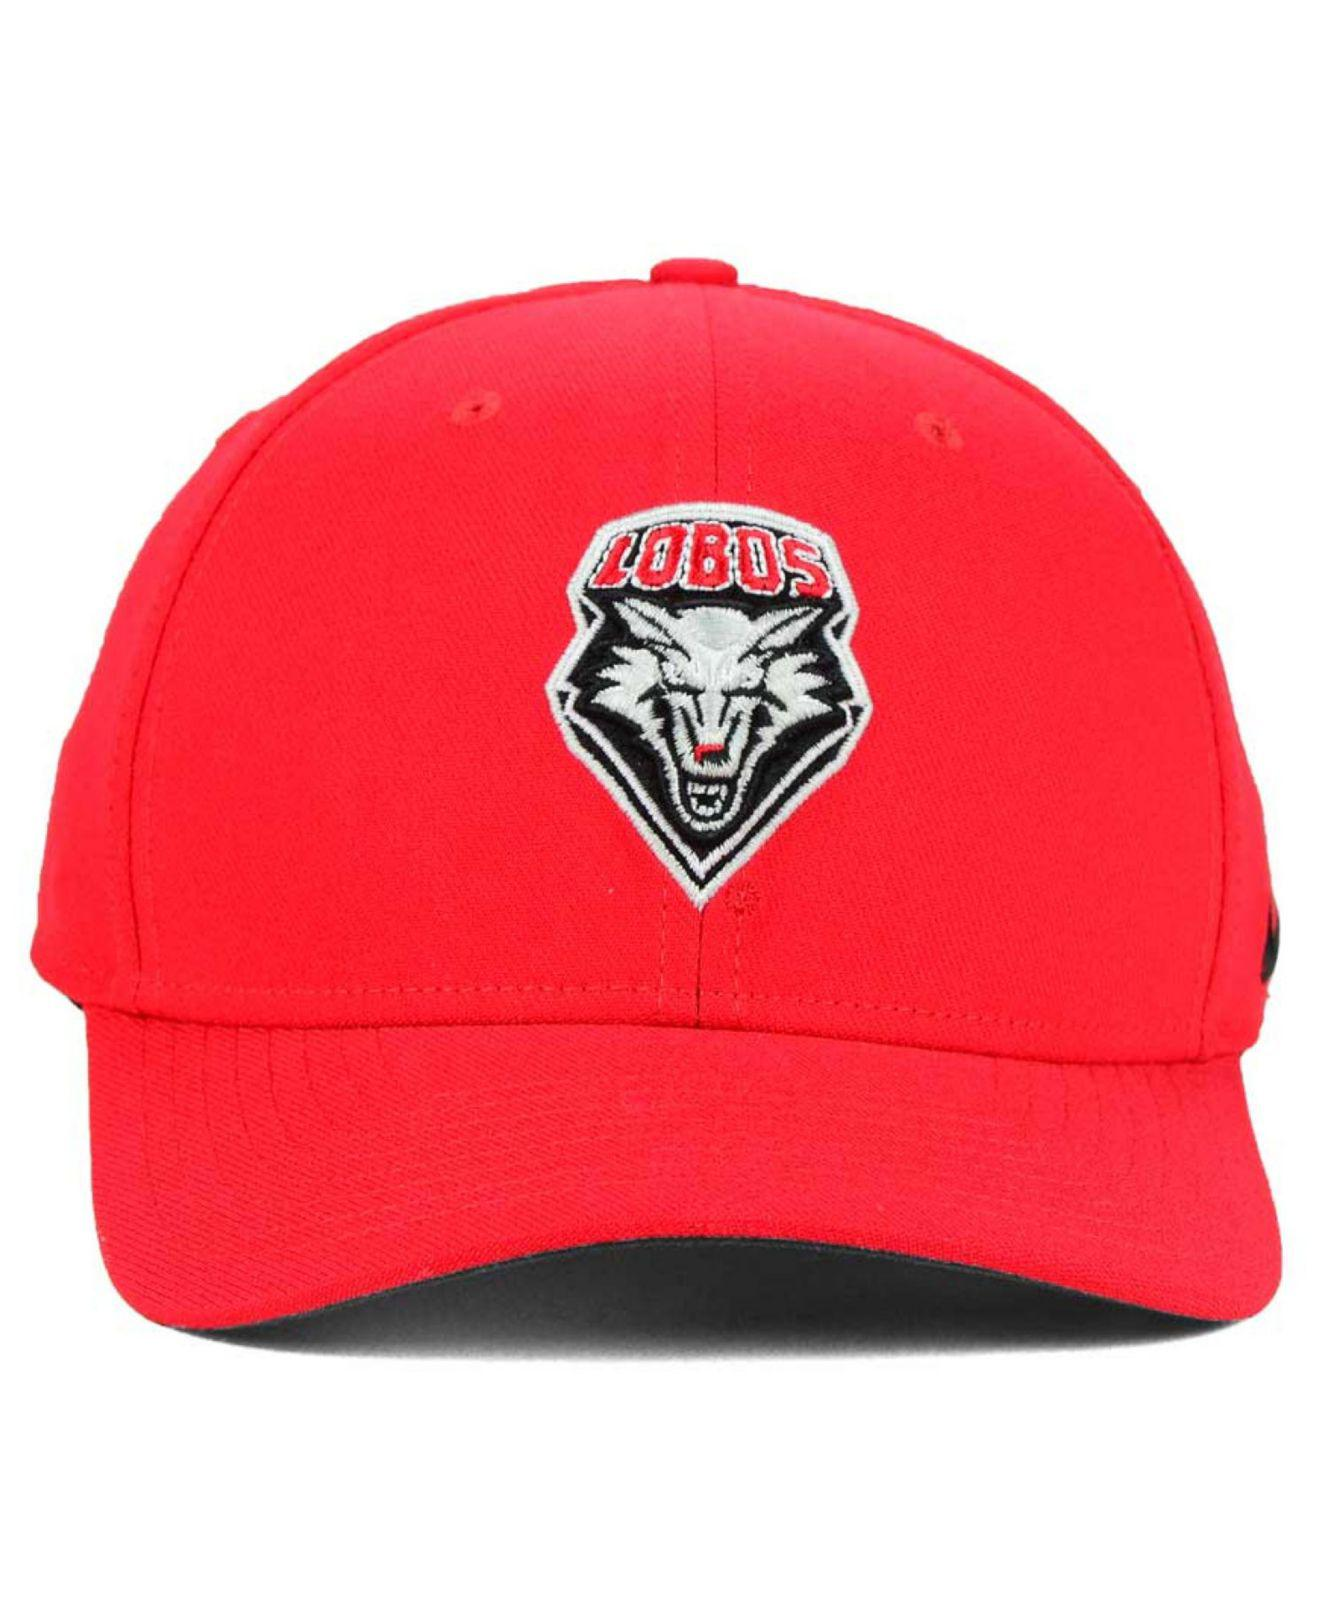 51cba765ac4 Lyst - Nike New Mexico Lobos Classic Swoosh Cap in Red for Men